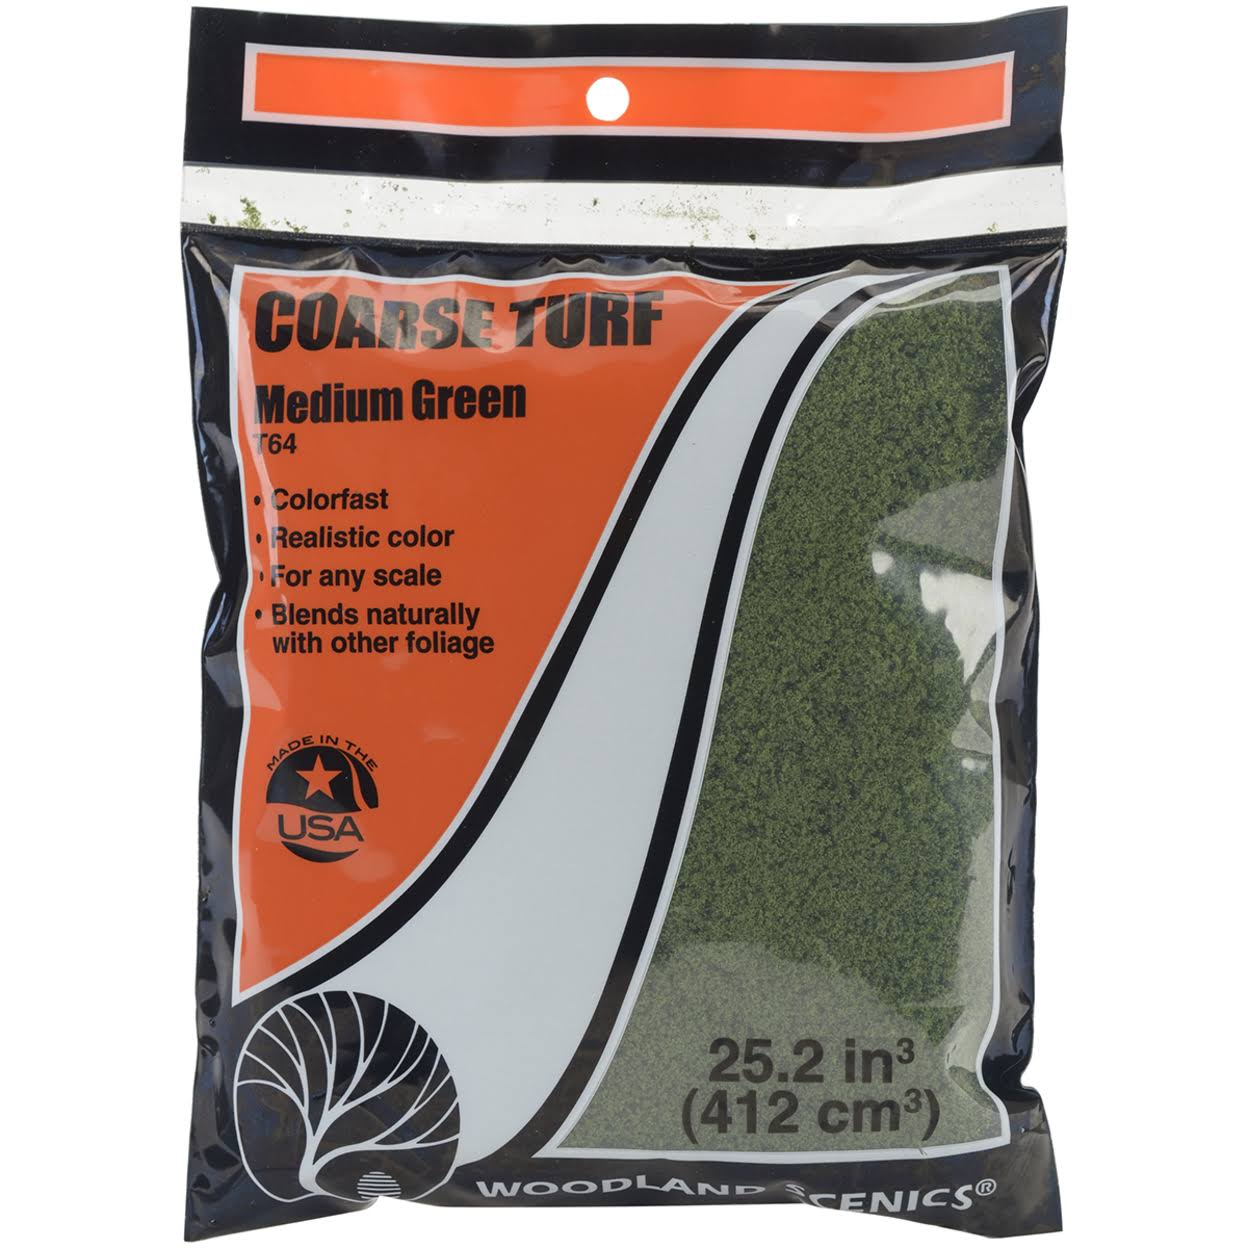 T64 Woodland Scenics Coarse Turf - Medium Green